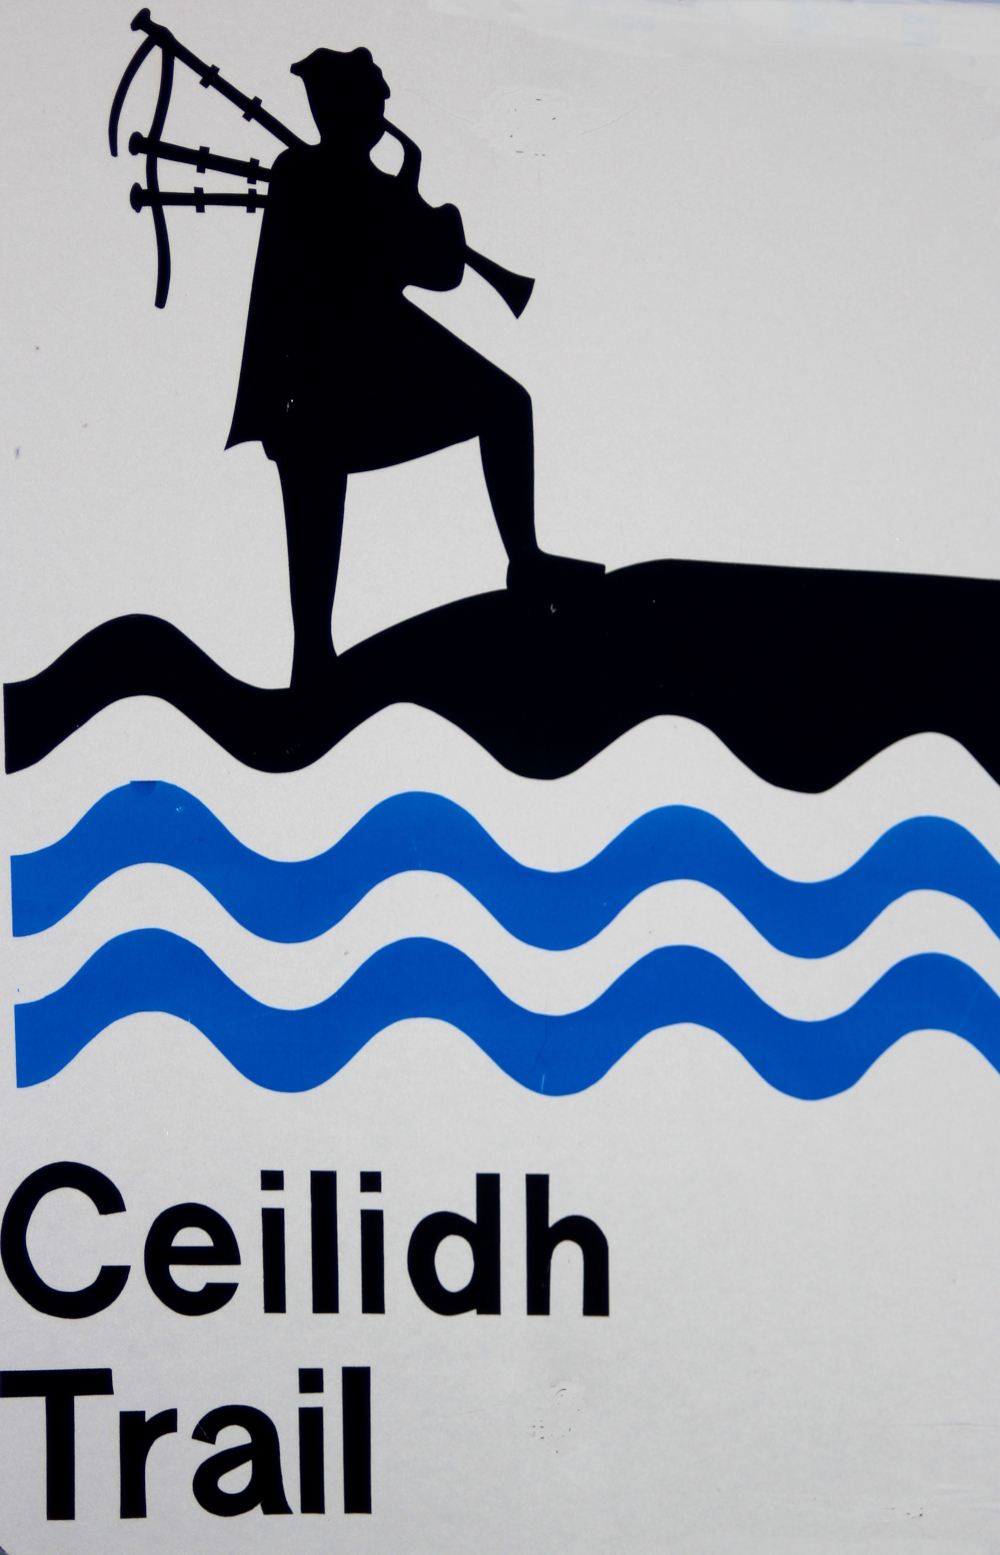 Look for the Ceilidh Trail sign along Route 19 on Cape Breton Island.